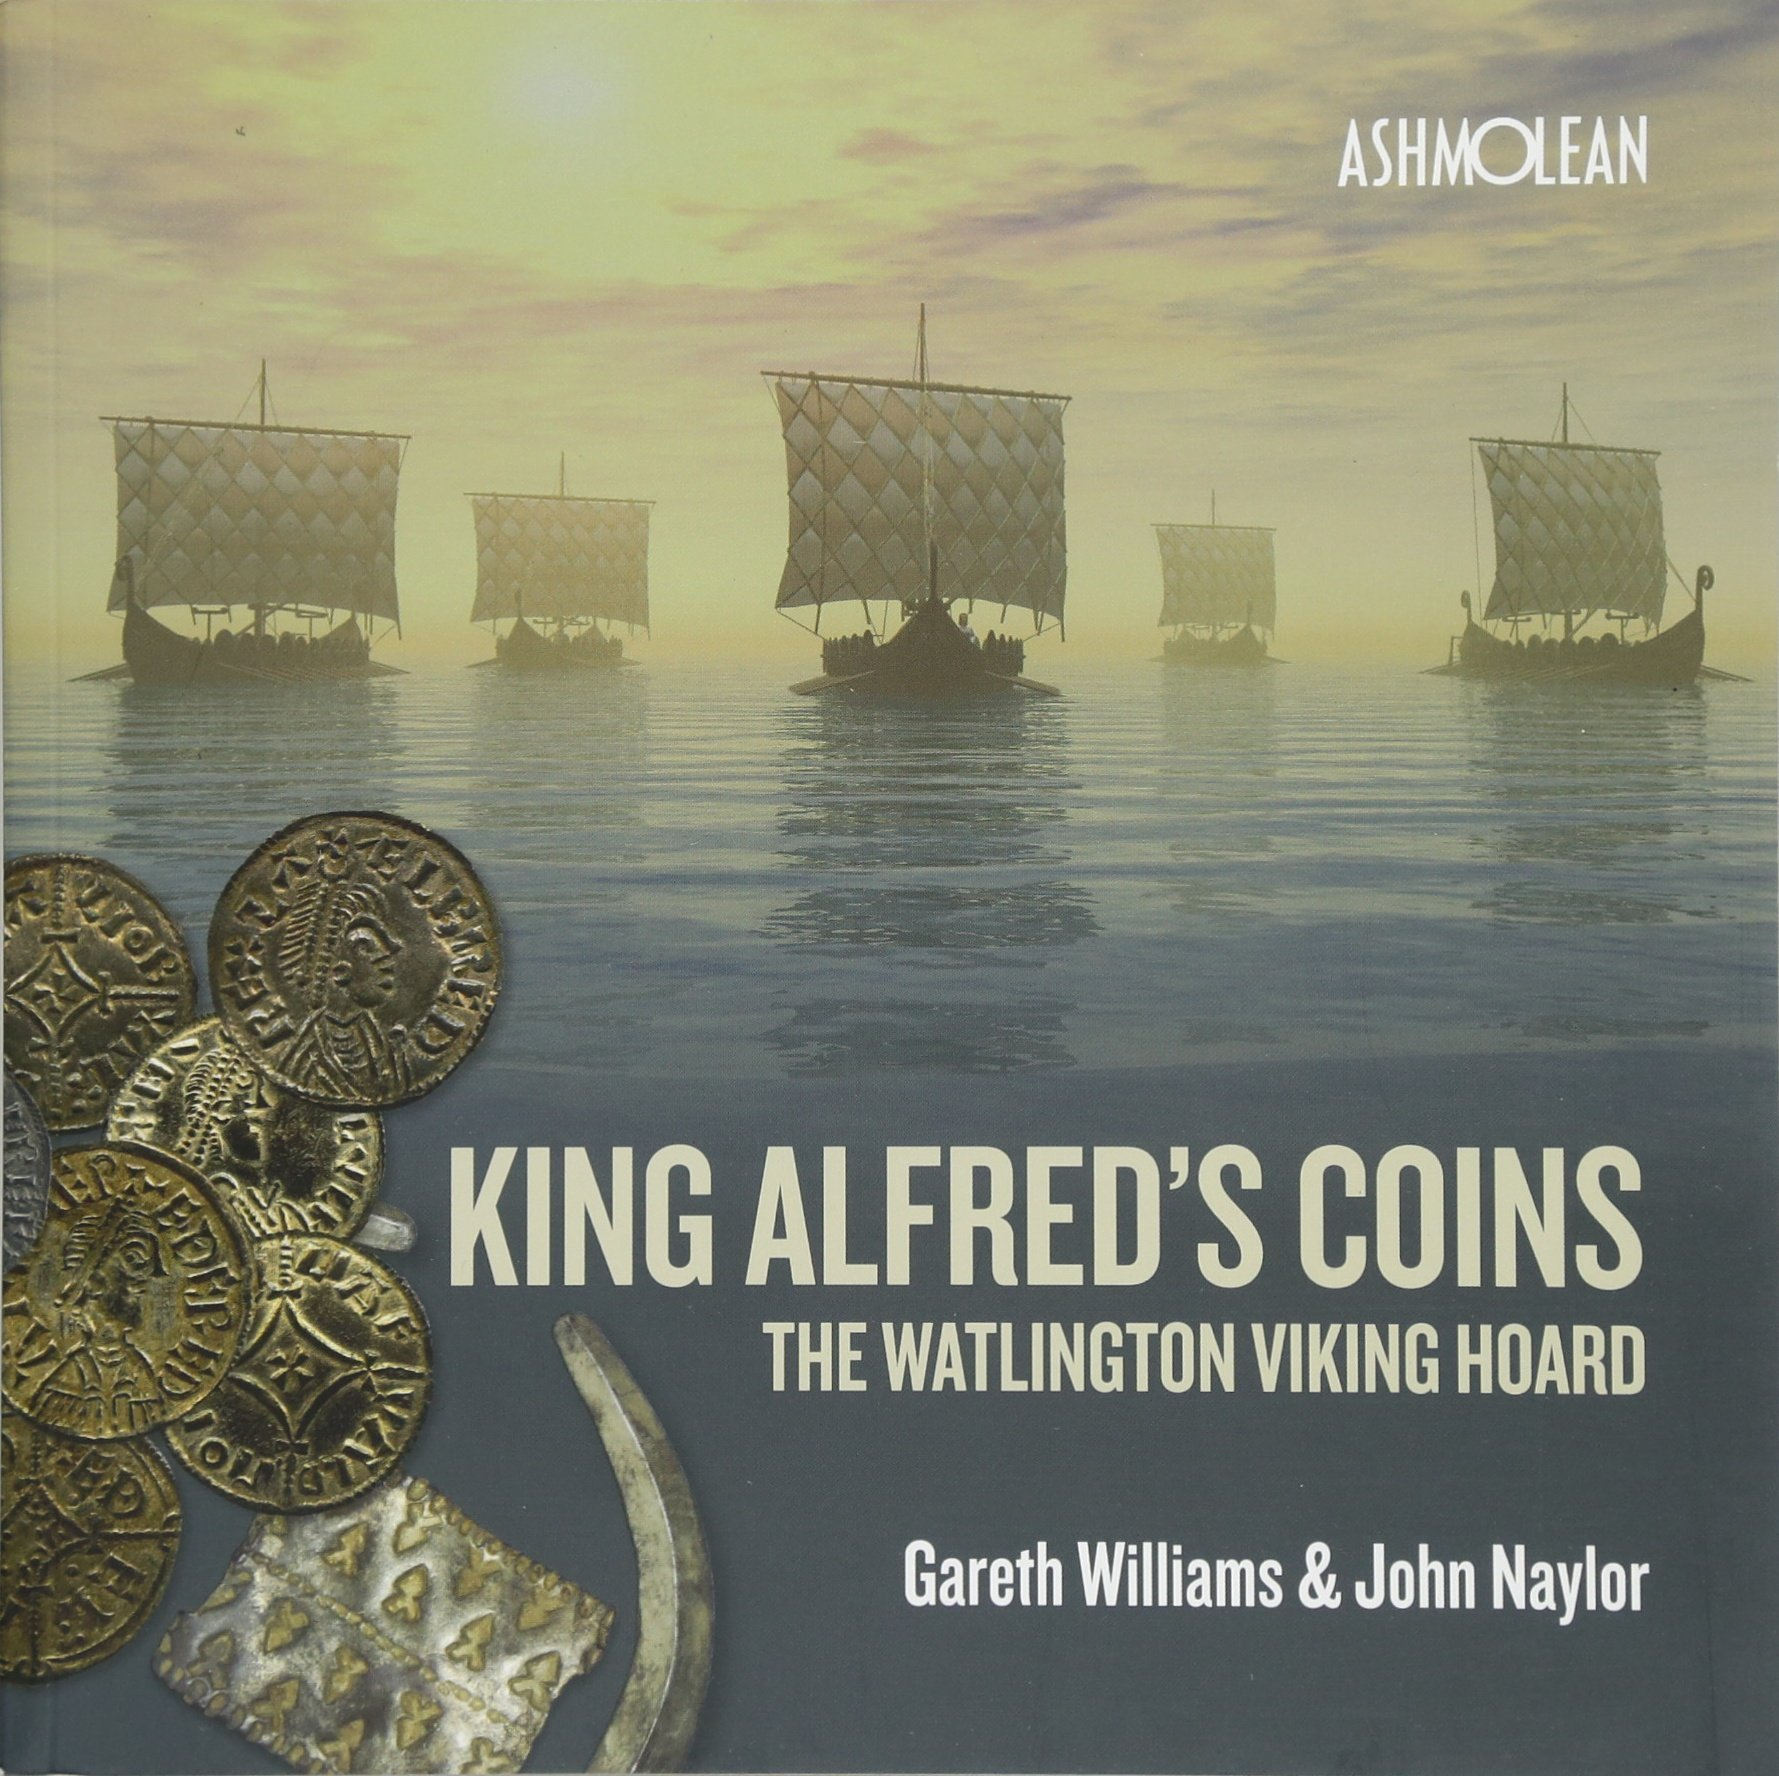 King Alfred's Coins  The Watlington Viking Hoard